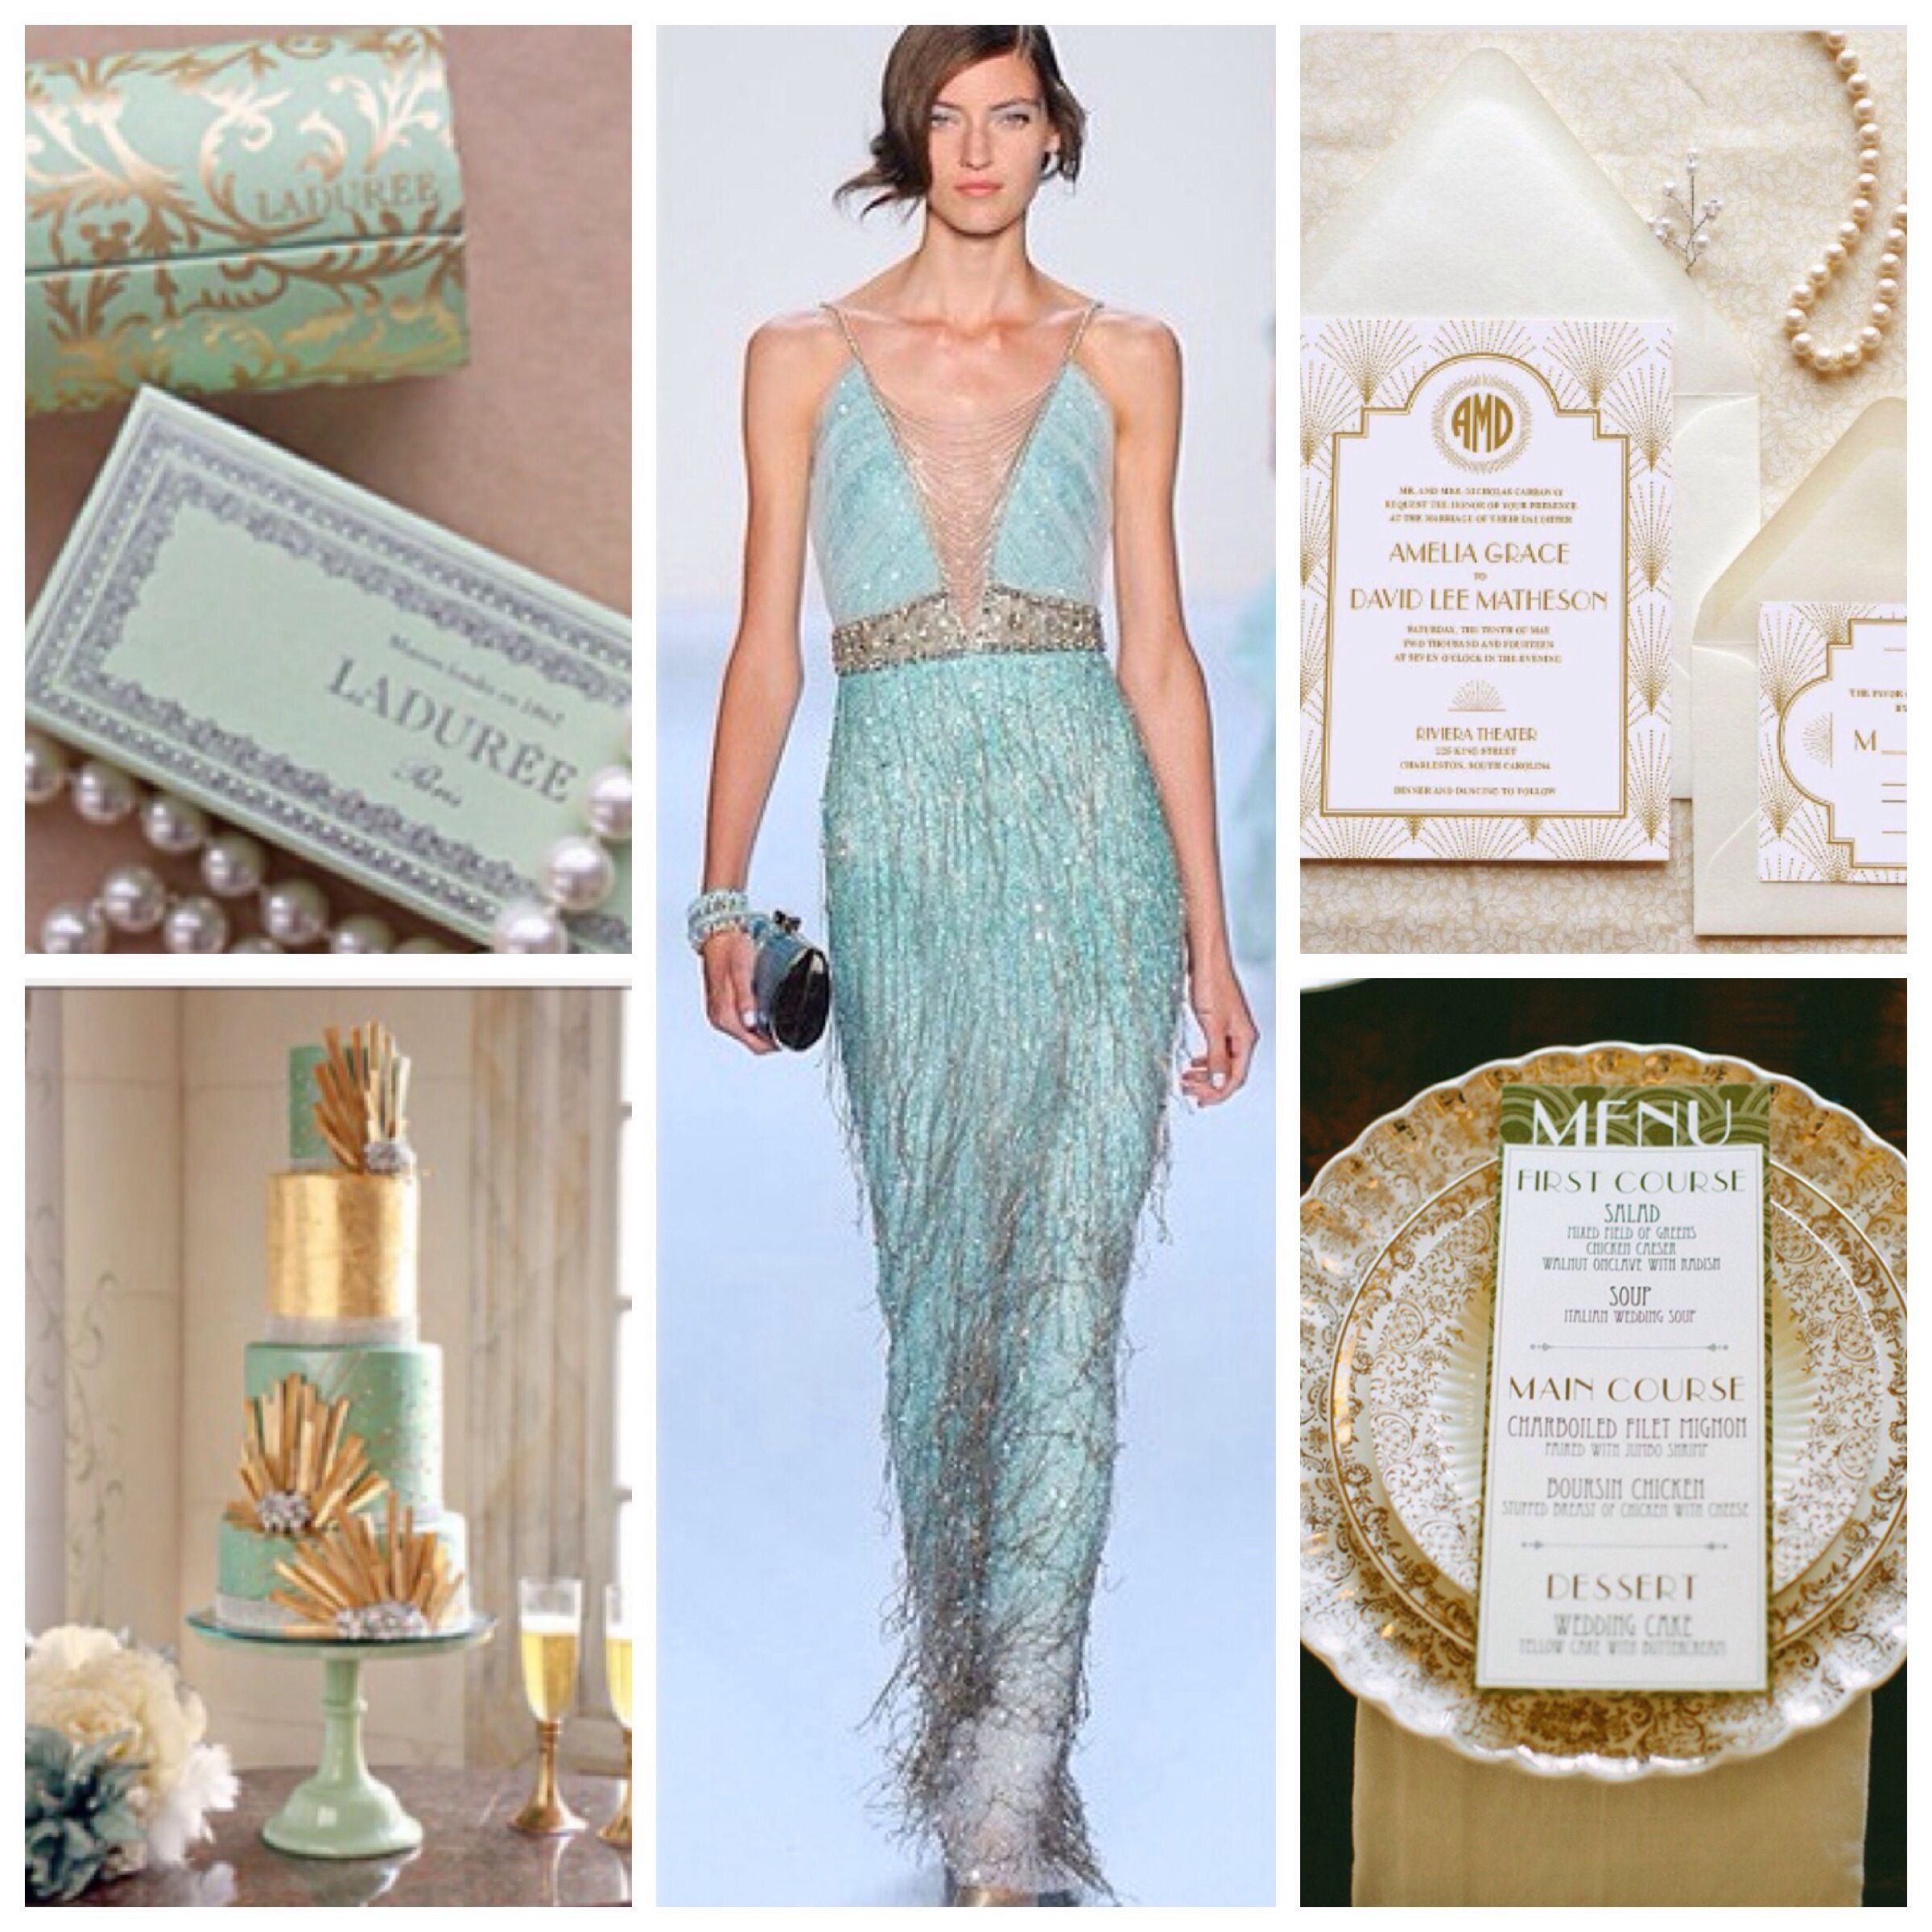 23 Stunningly Beautiful Decor Ideas For The Most: Roaring 20's Wedding Inspiration